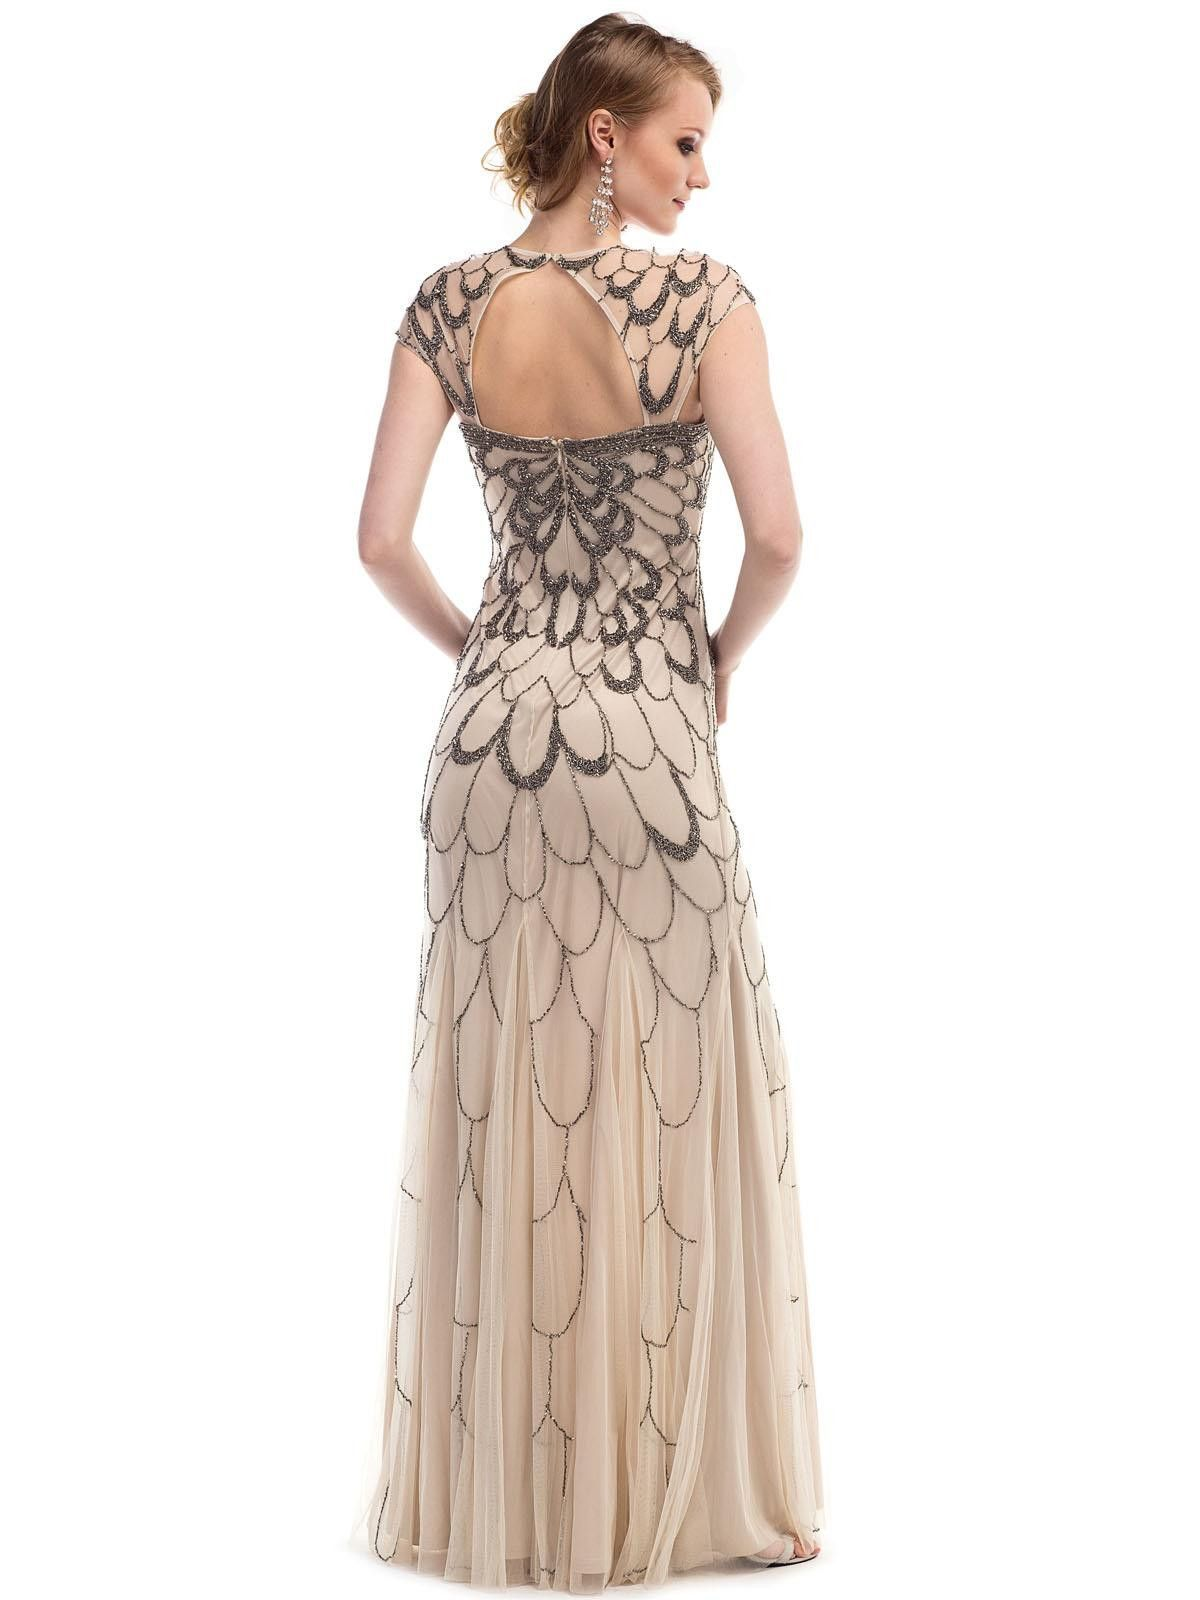 Great gatsby style prom dress